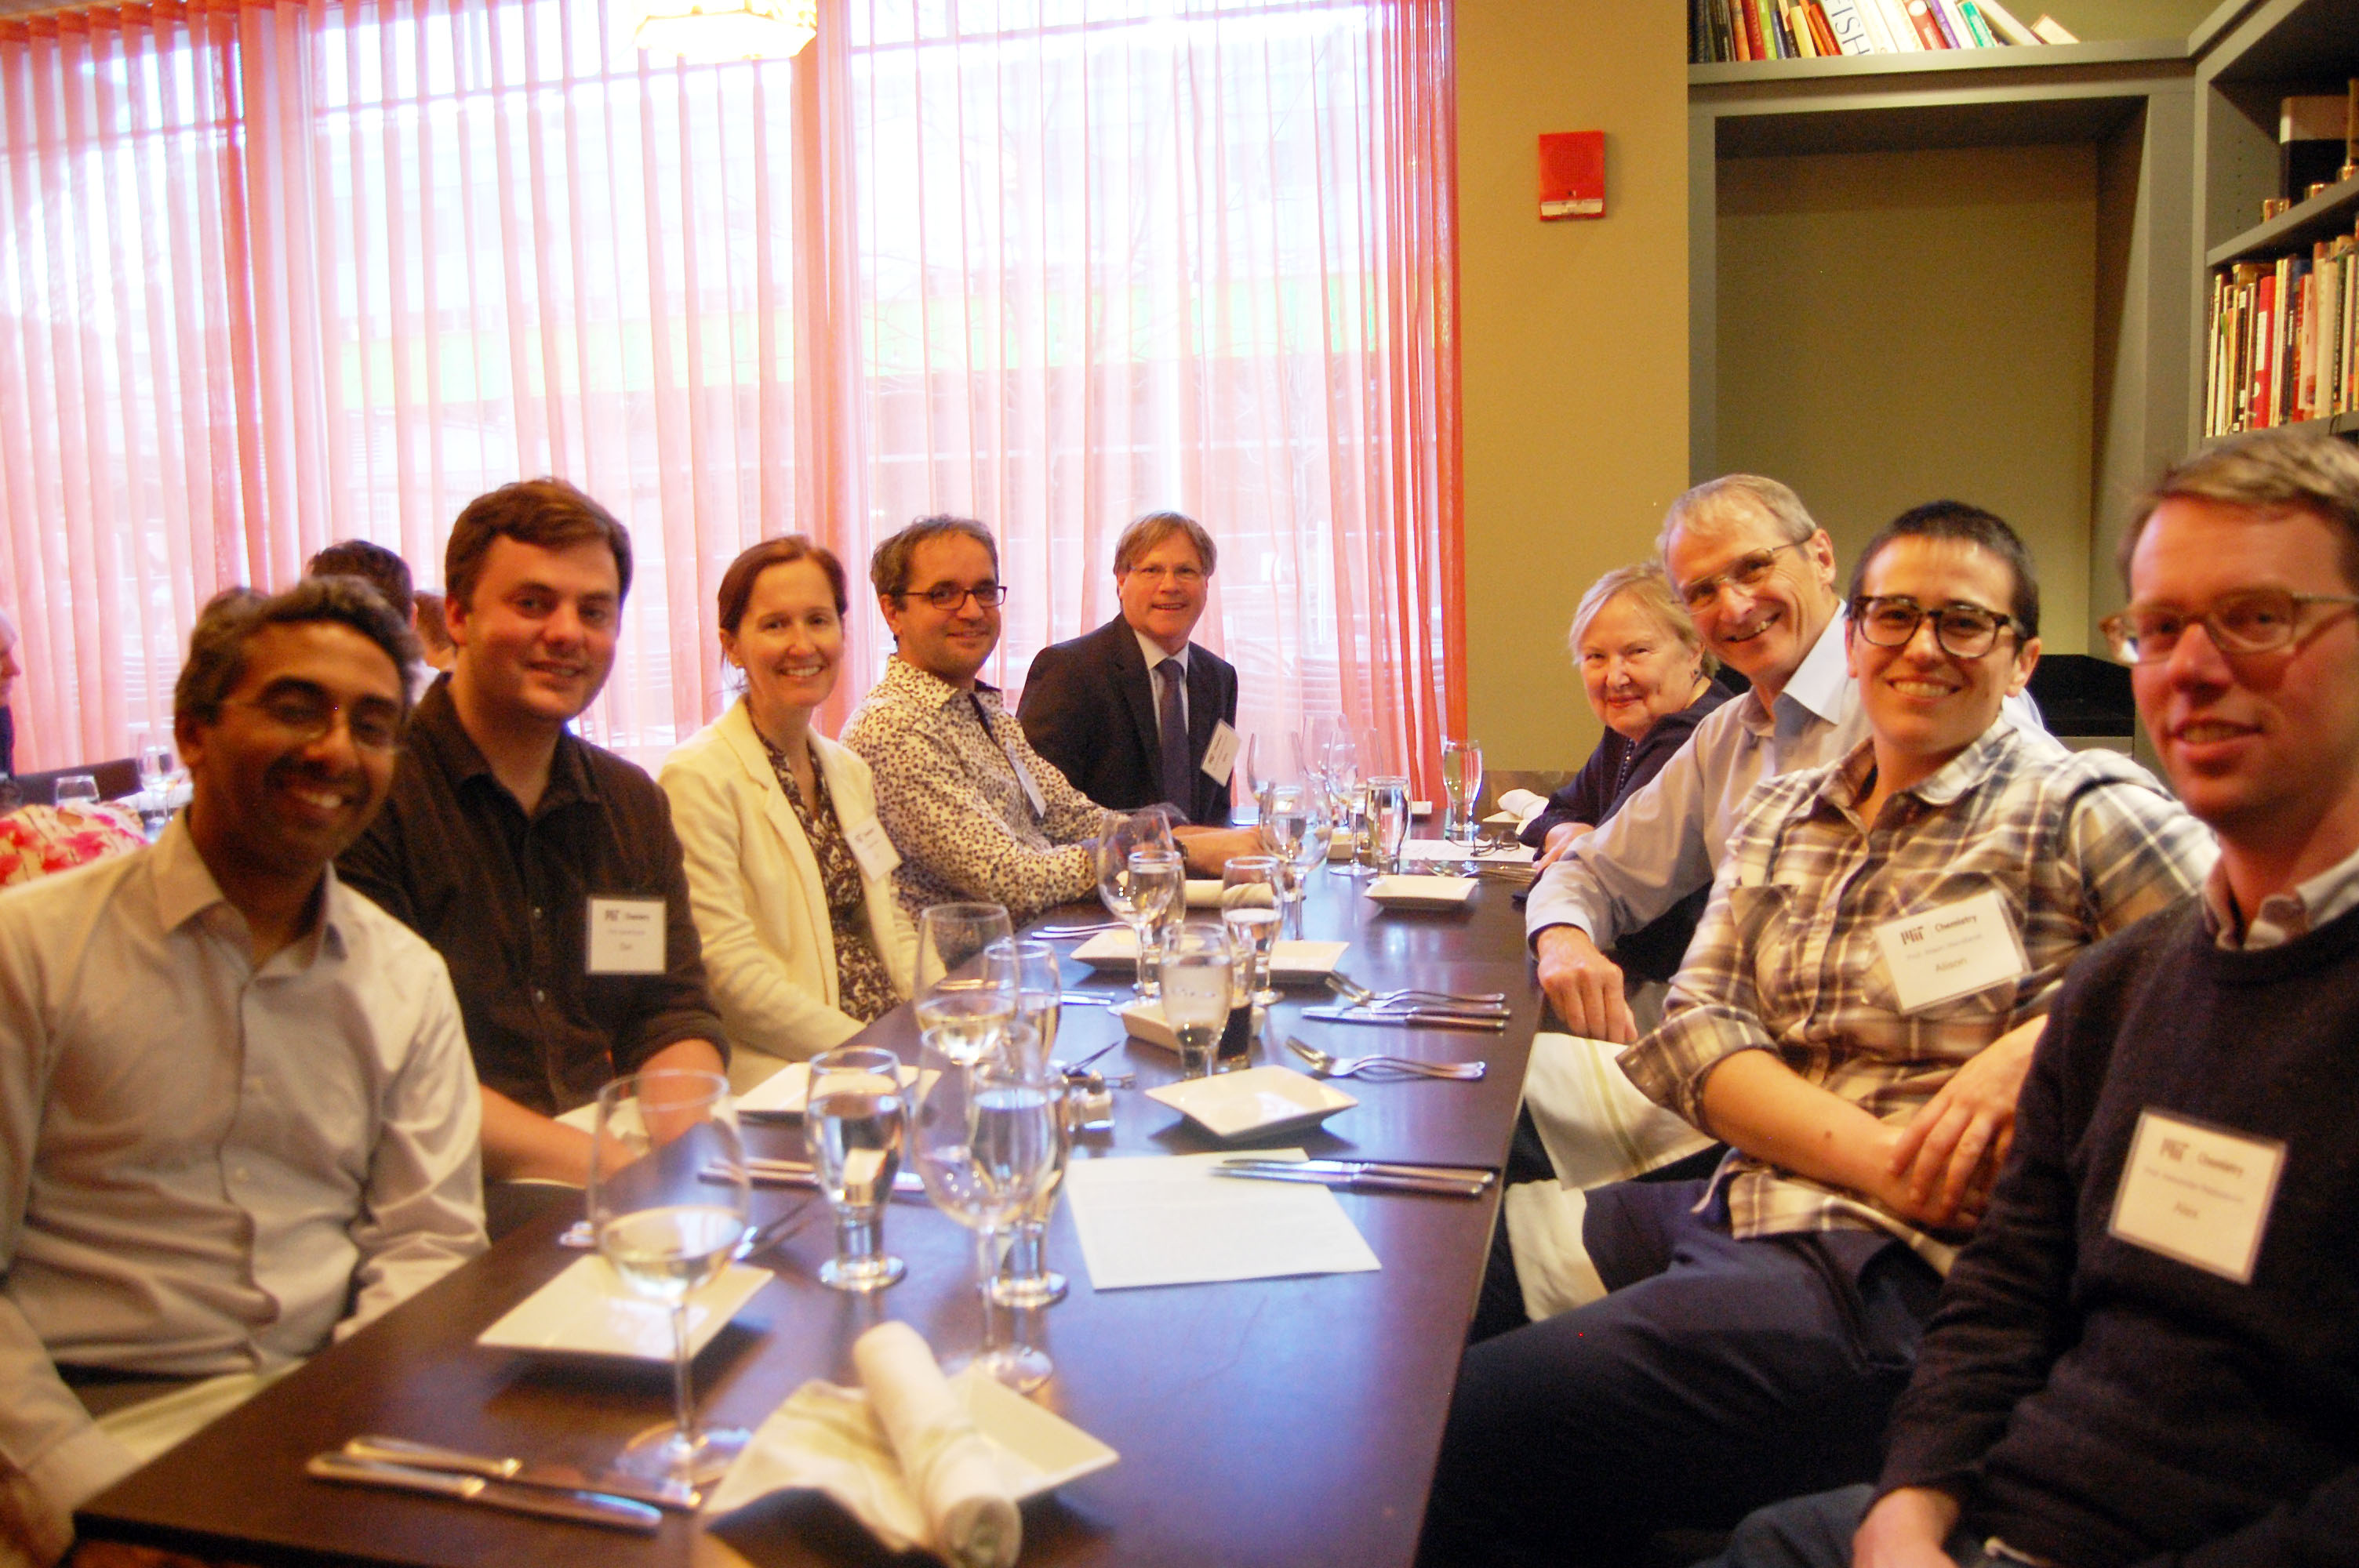 L-R (clockwise) seated at dinner: Professors Yogesh Surendranath, Daniel Suess, Elizabeth Nolan, Mircea Dinca, Michael Gallagher, PhD '84, Nancy Schrock, Prof. Emeritus Richard Schrock, Professors Alison Wendlandt and Alexander Radosevich